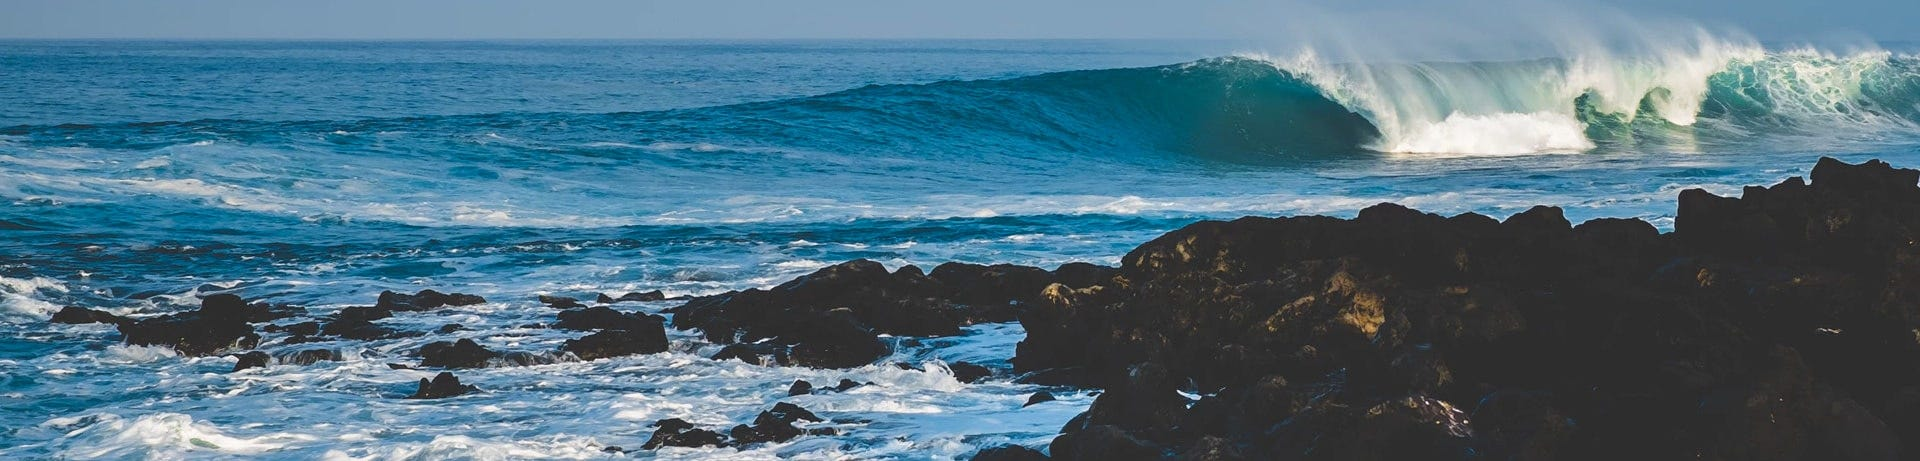 5fa312ef4ee5 Latest Blog Posts | Rip Curl